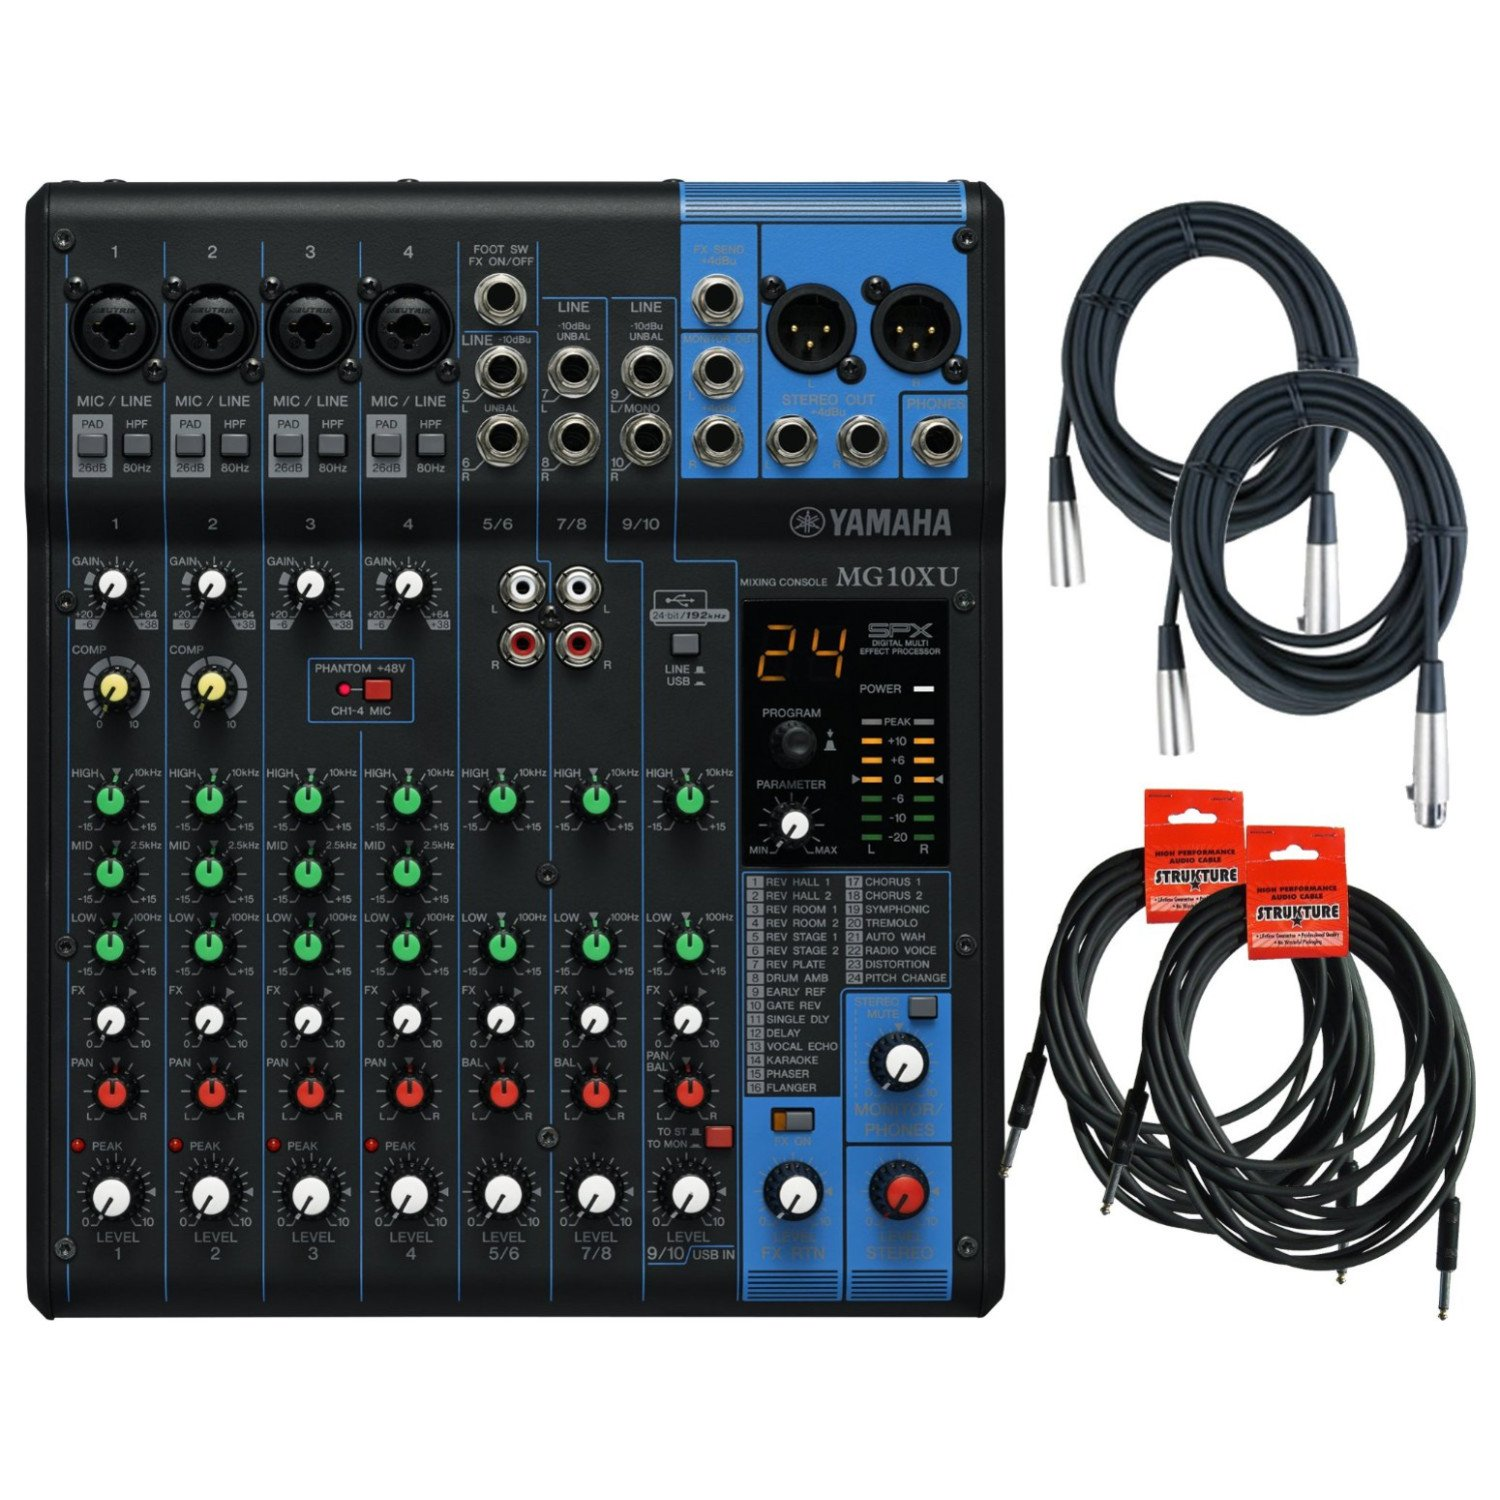 Yamaha MG10XU 10 Input Stereo Mixer (with Compression, Effects, and USB) w/ 2 XL